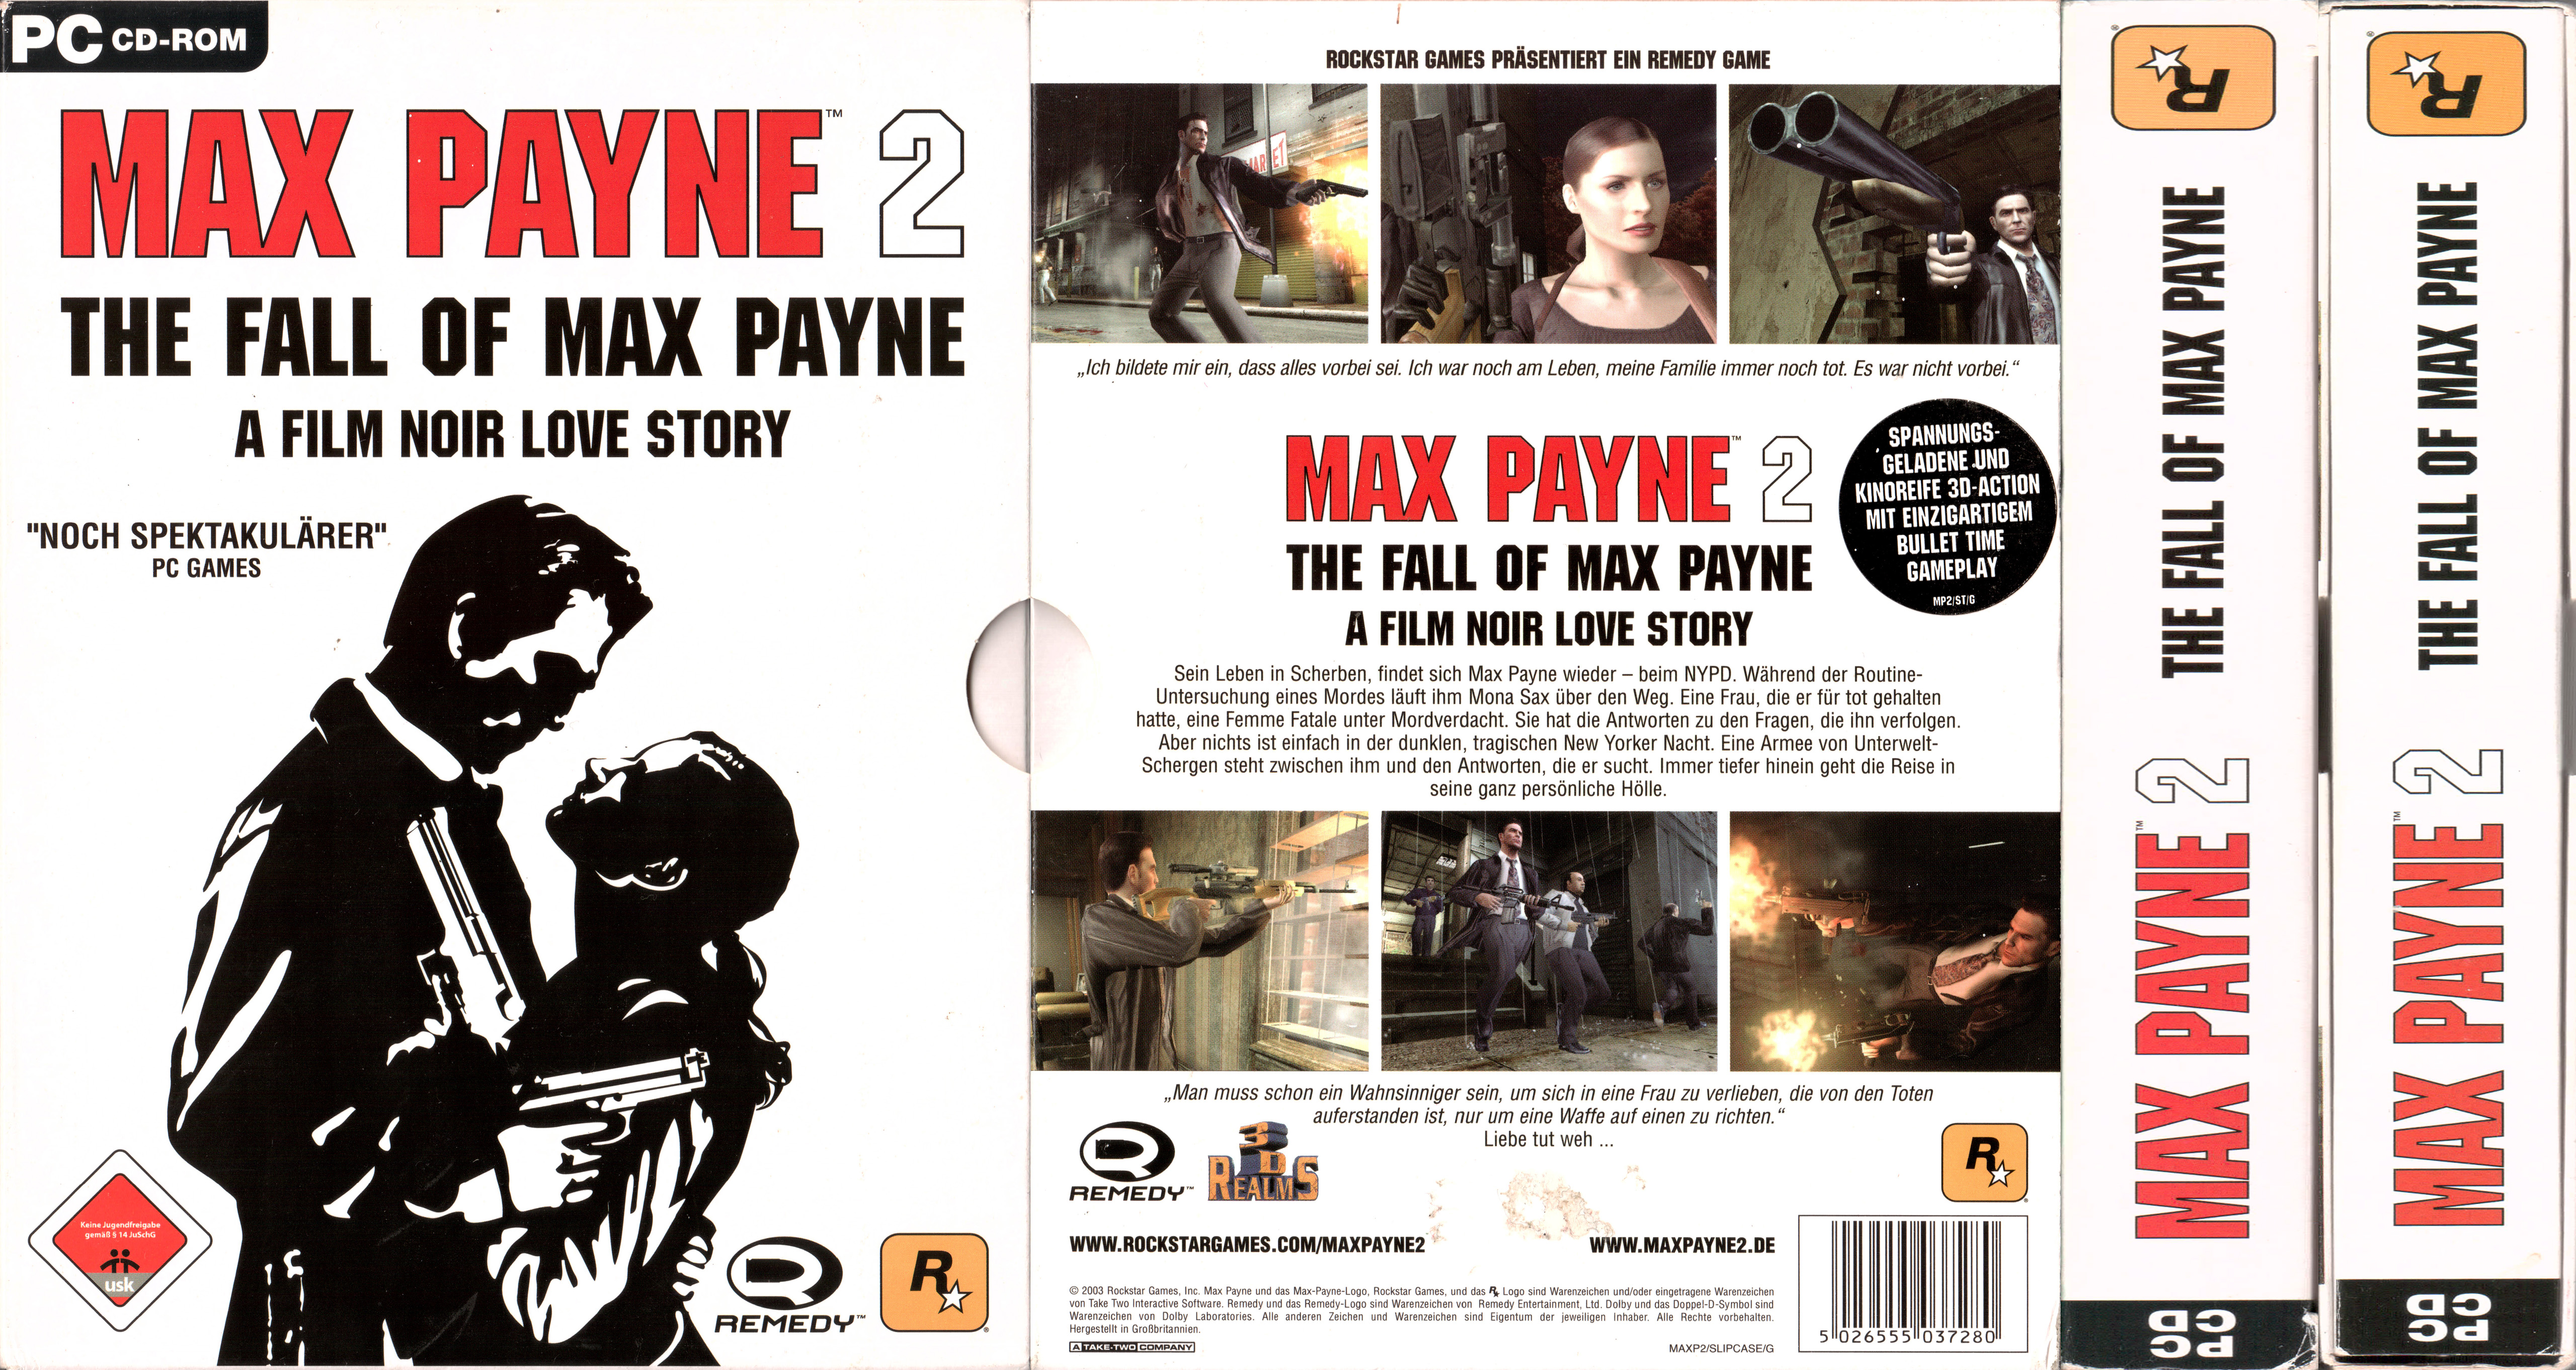 Big Box Collection Papercraft Model For Max Payne 2 The Fall Of